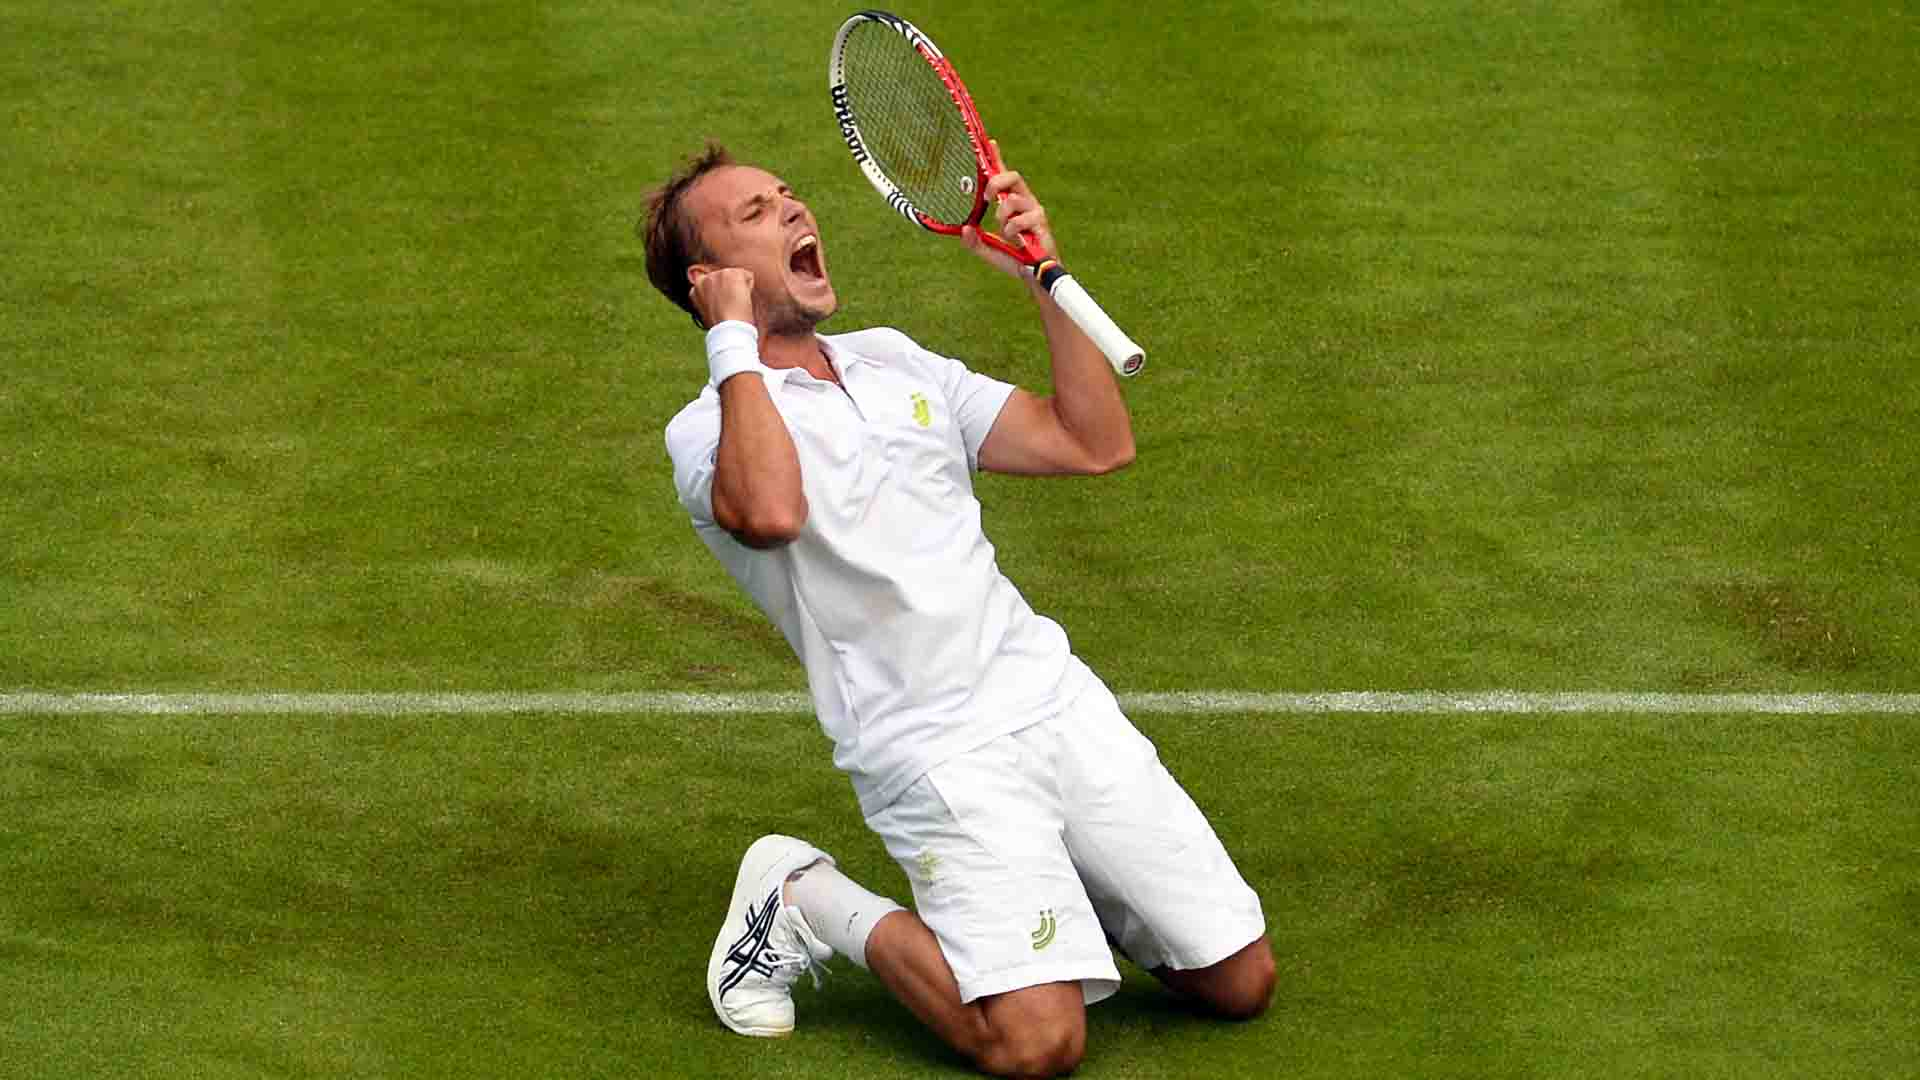 Steve Darcis defeated Rafael Nadal in straight sets in the first round at Wimbledon in 2013.